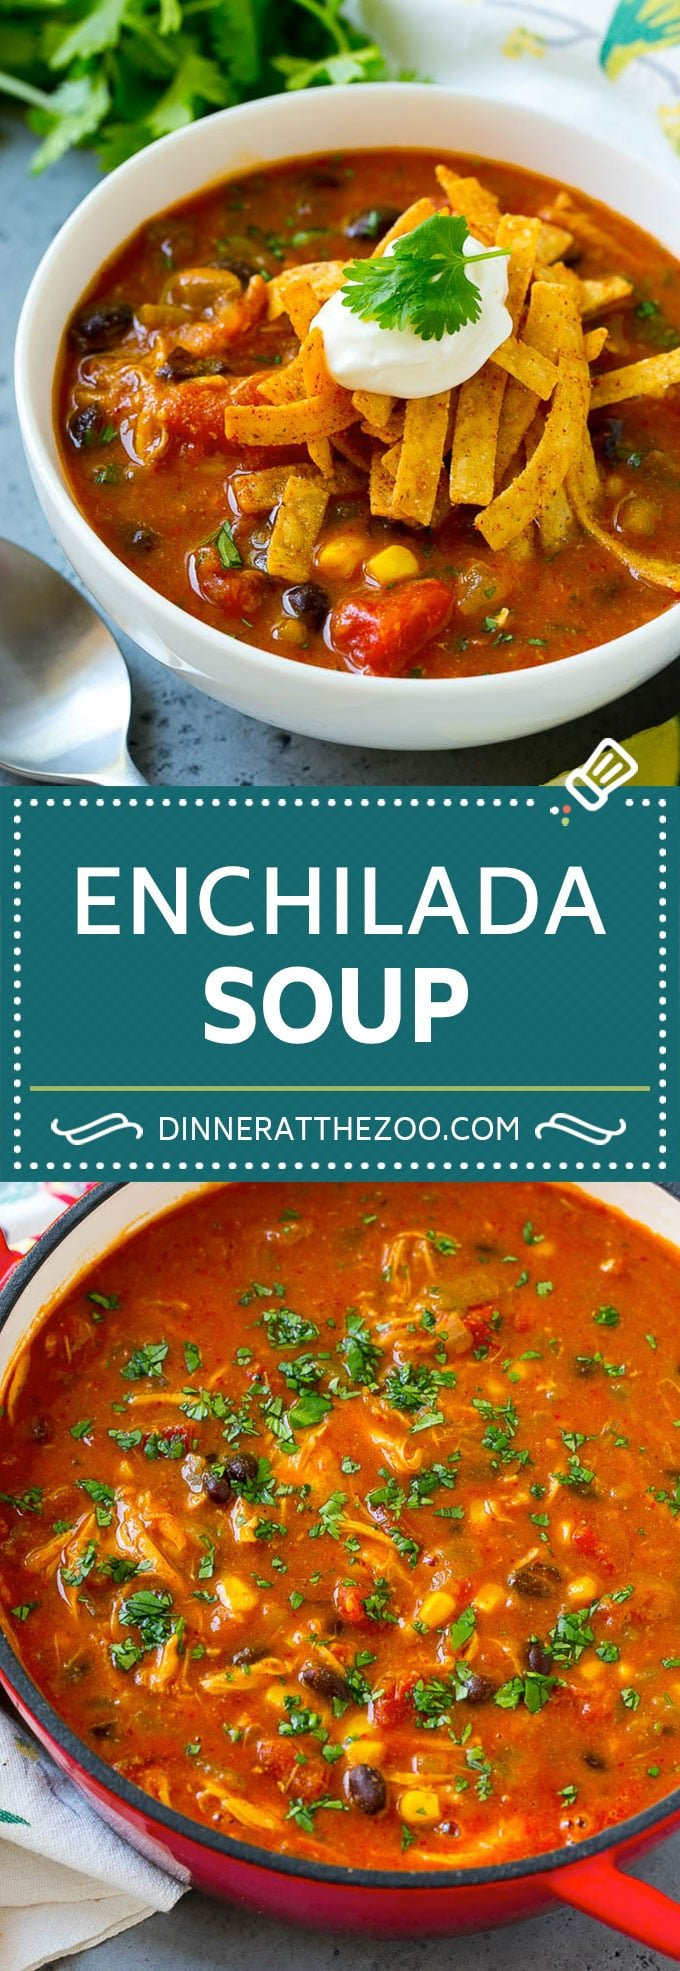 Chicken Enchilada Soup | Mexican Soup | Enchilada Soup #soup #chicken #chickensoup #beans #corn #dinner #dinneratthezoo